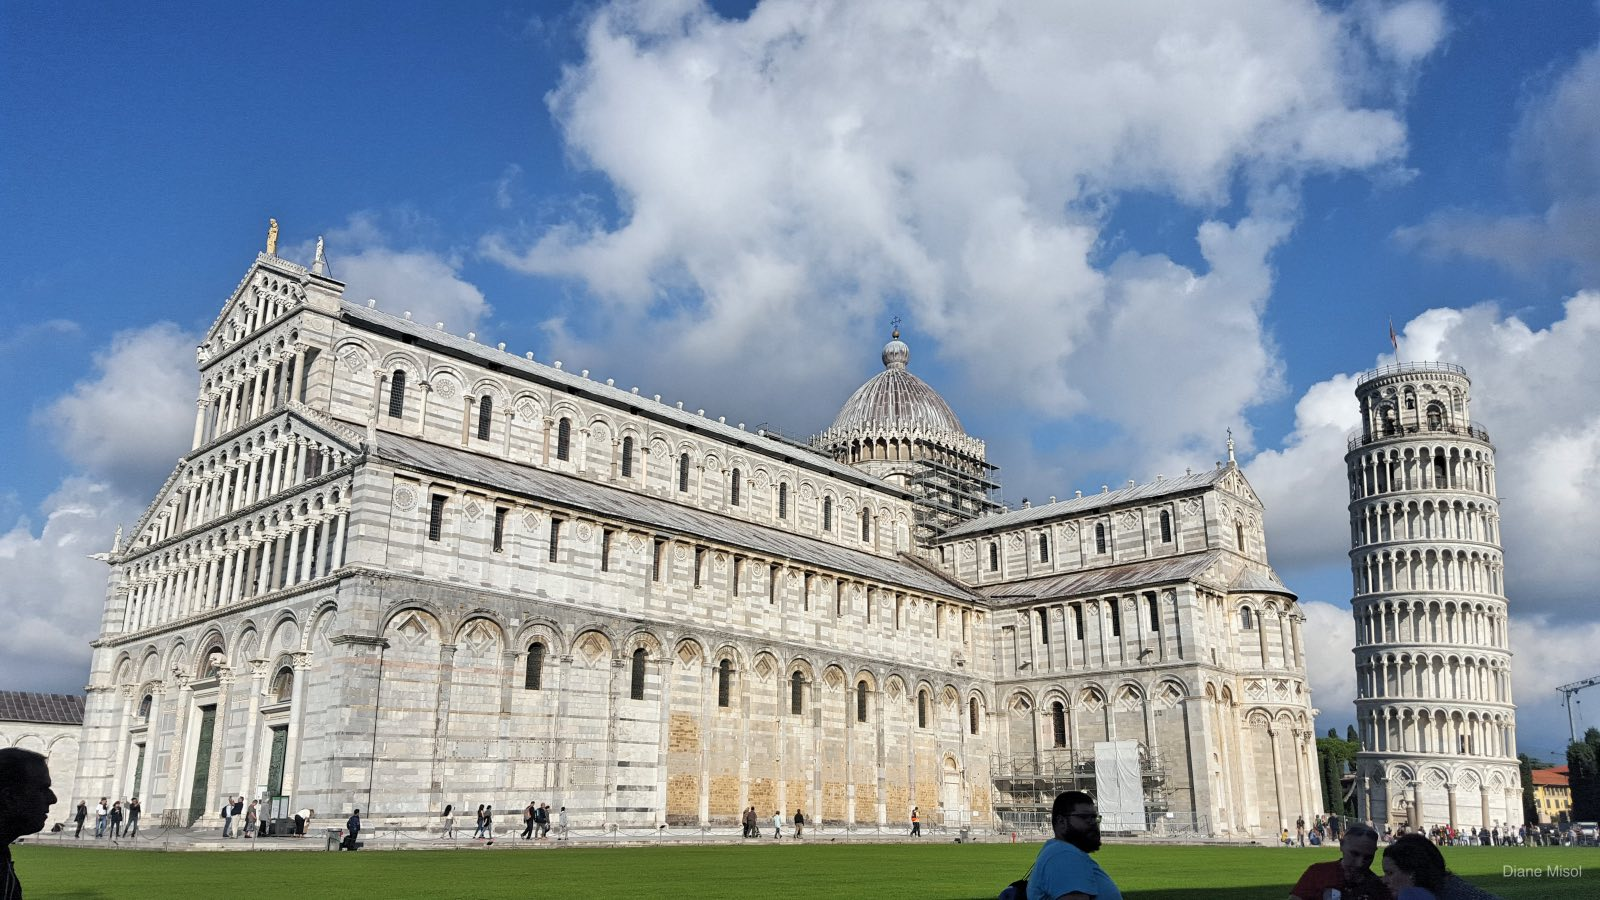 Piazza dei Miracoli, Leaning Tower of Pisa, Italy